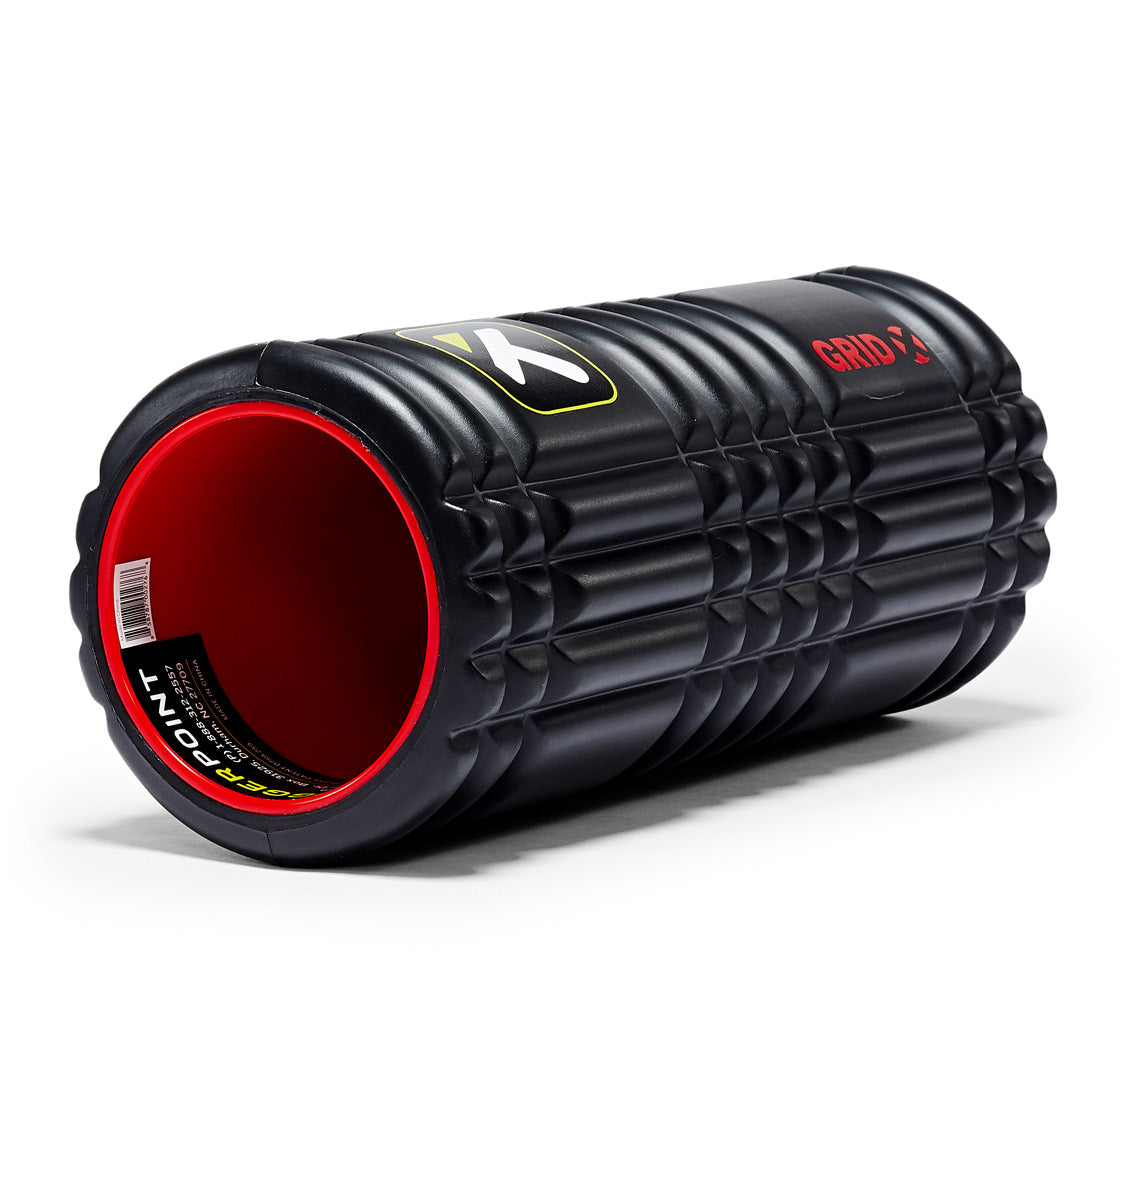 TPT3GRDPXX00000 TriggerPoint The Grid 1.0 X Foam Roller - 45 Degree Angle - Full Shot